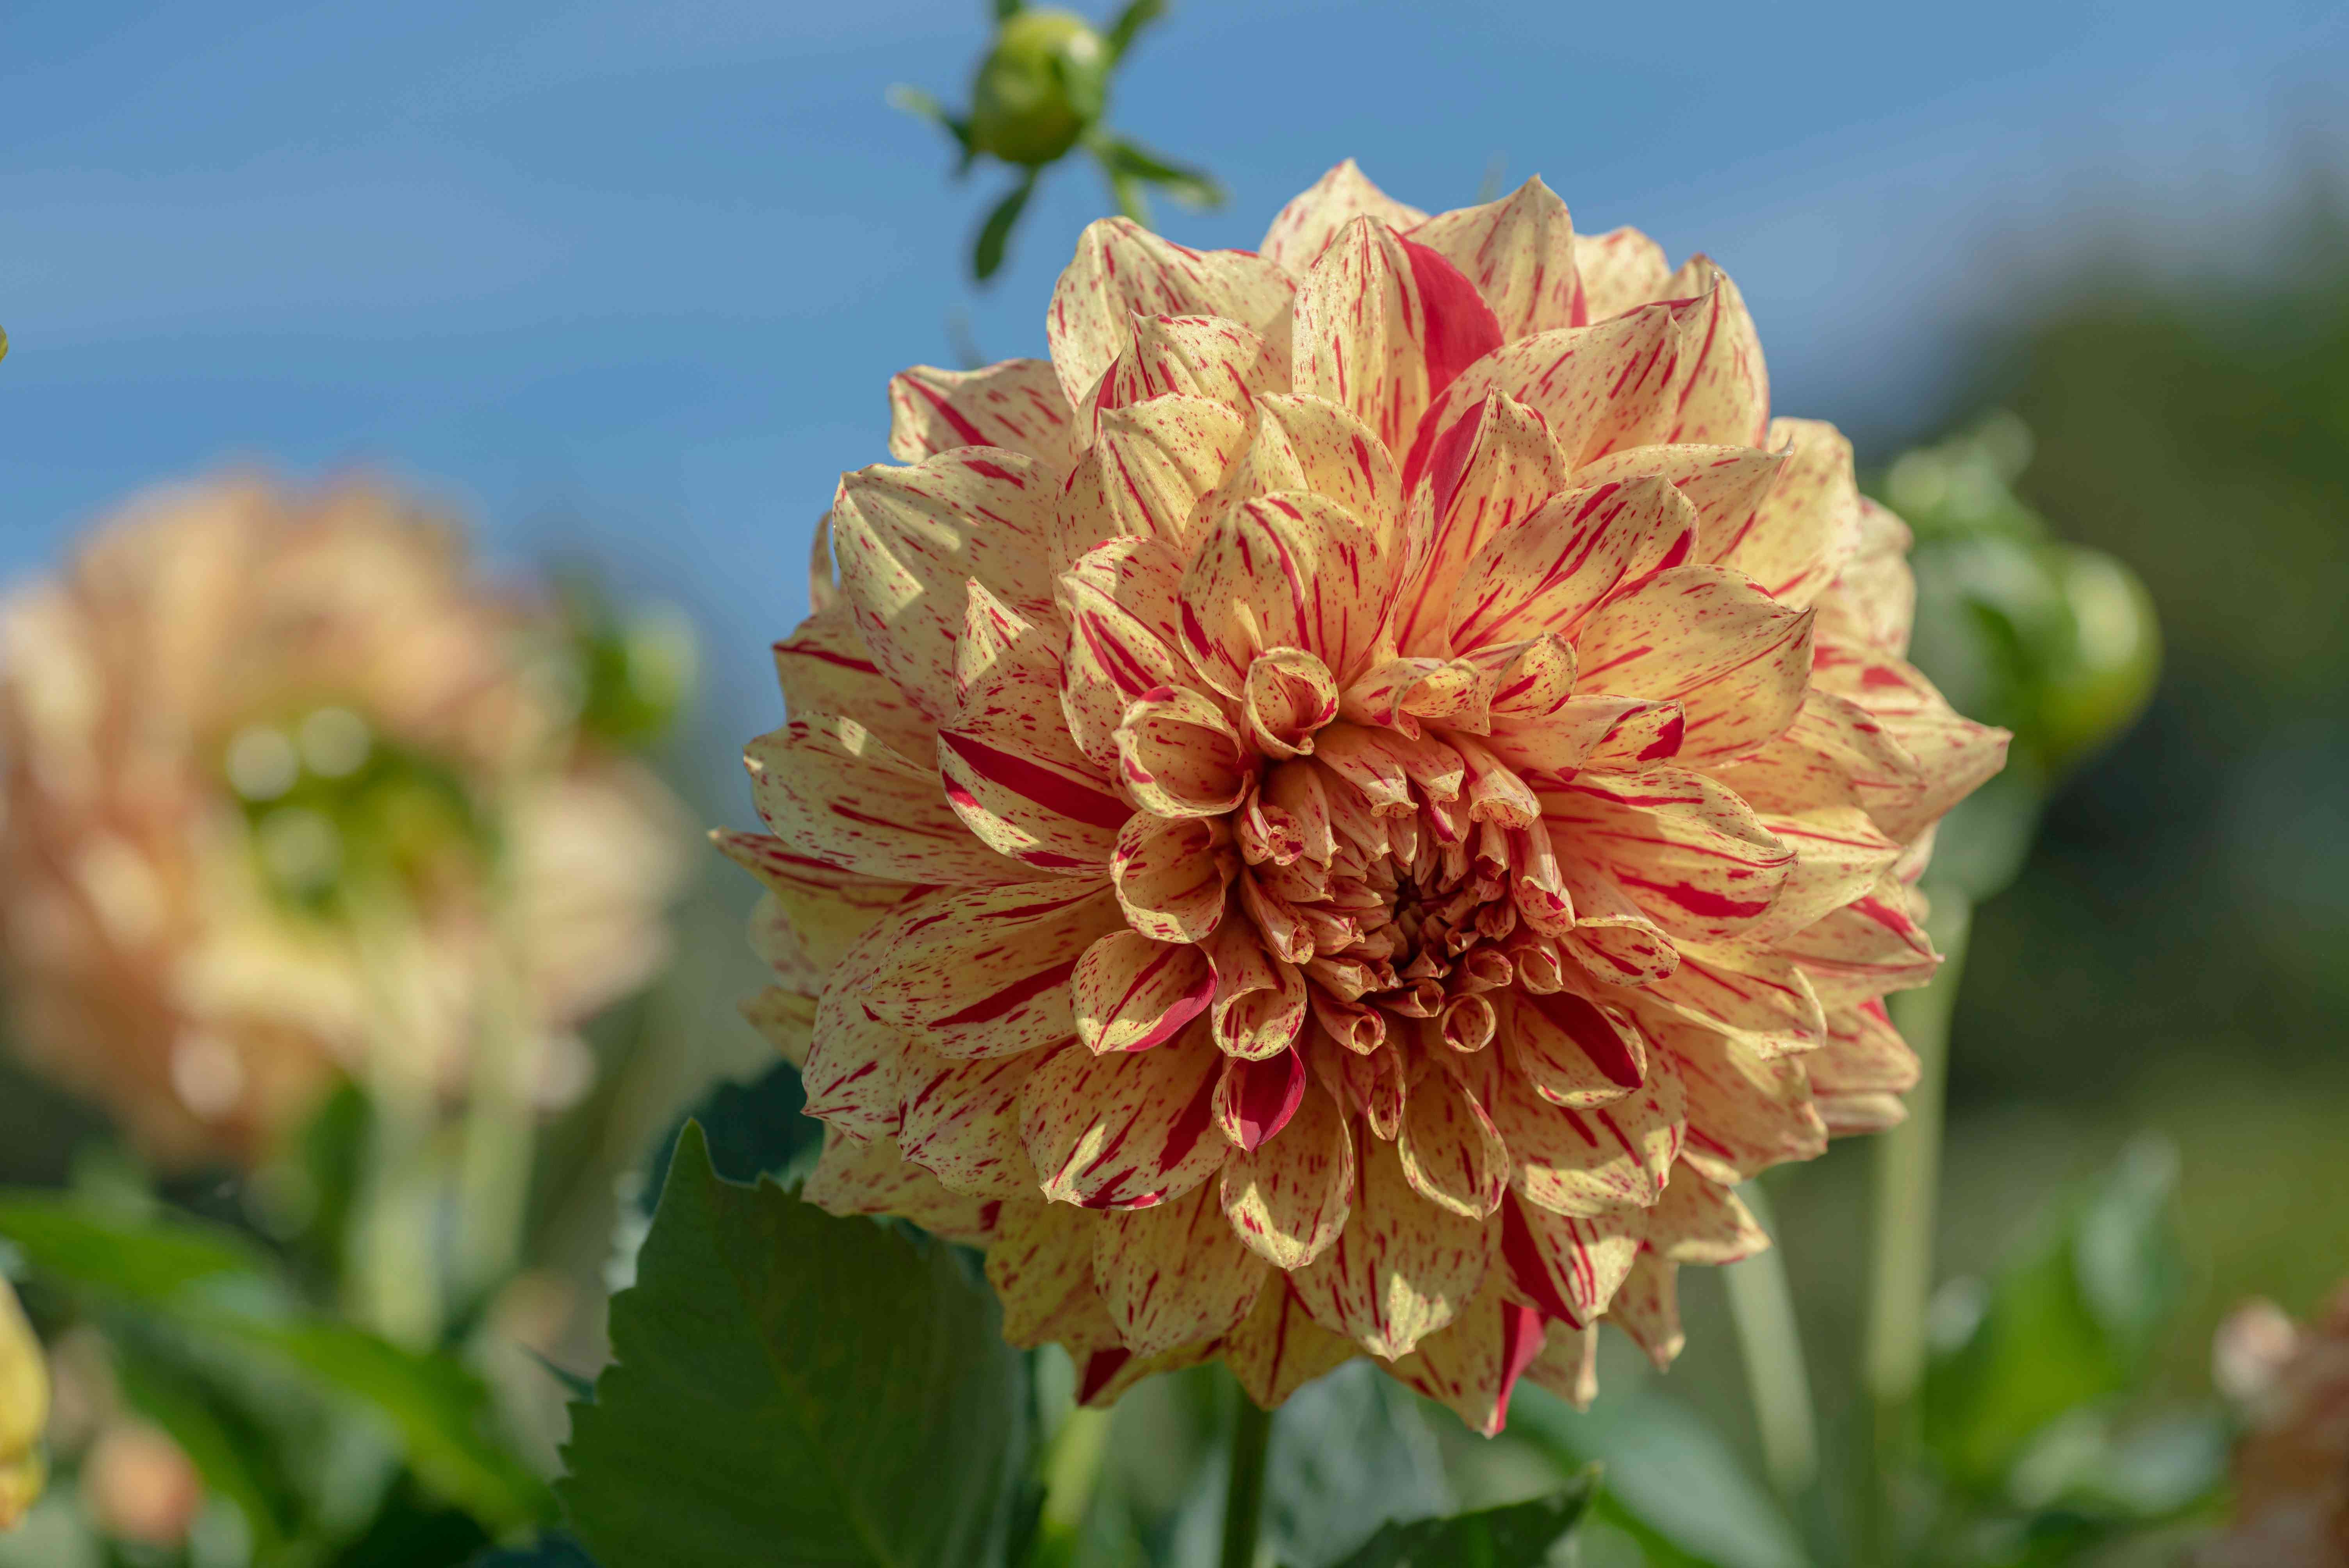 Dahlia gloriosa plant with yellow and red splattered petals closeup